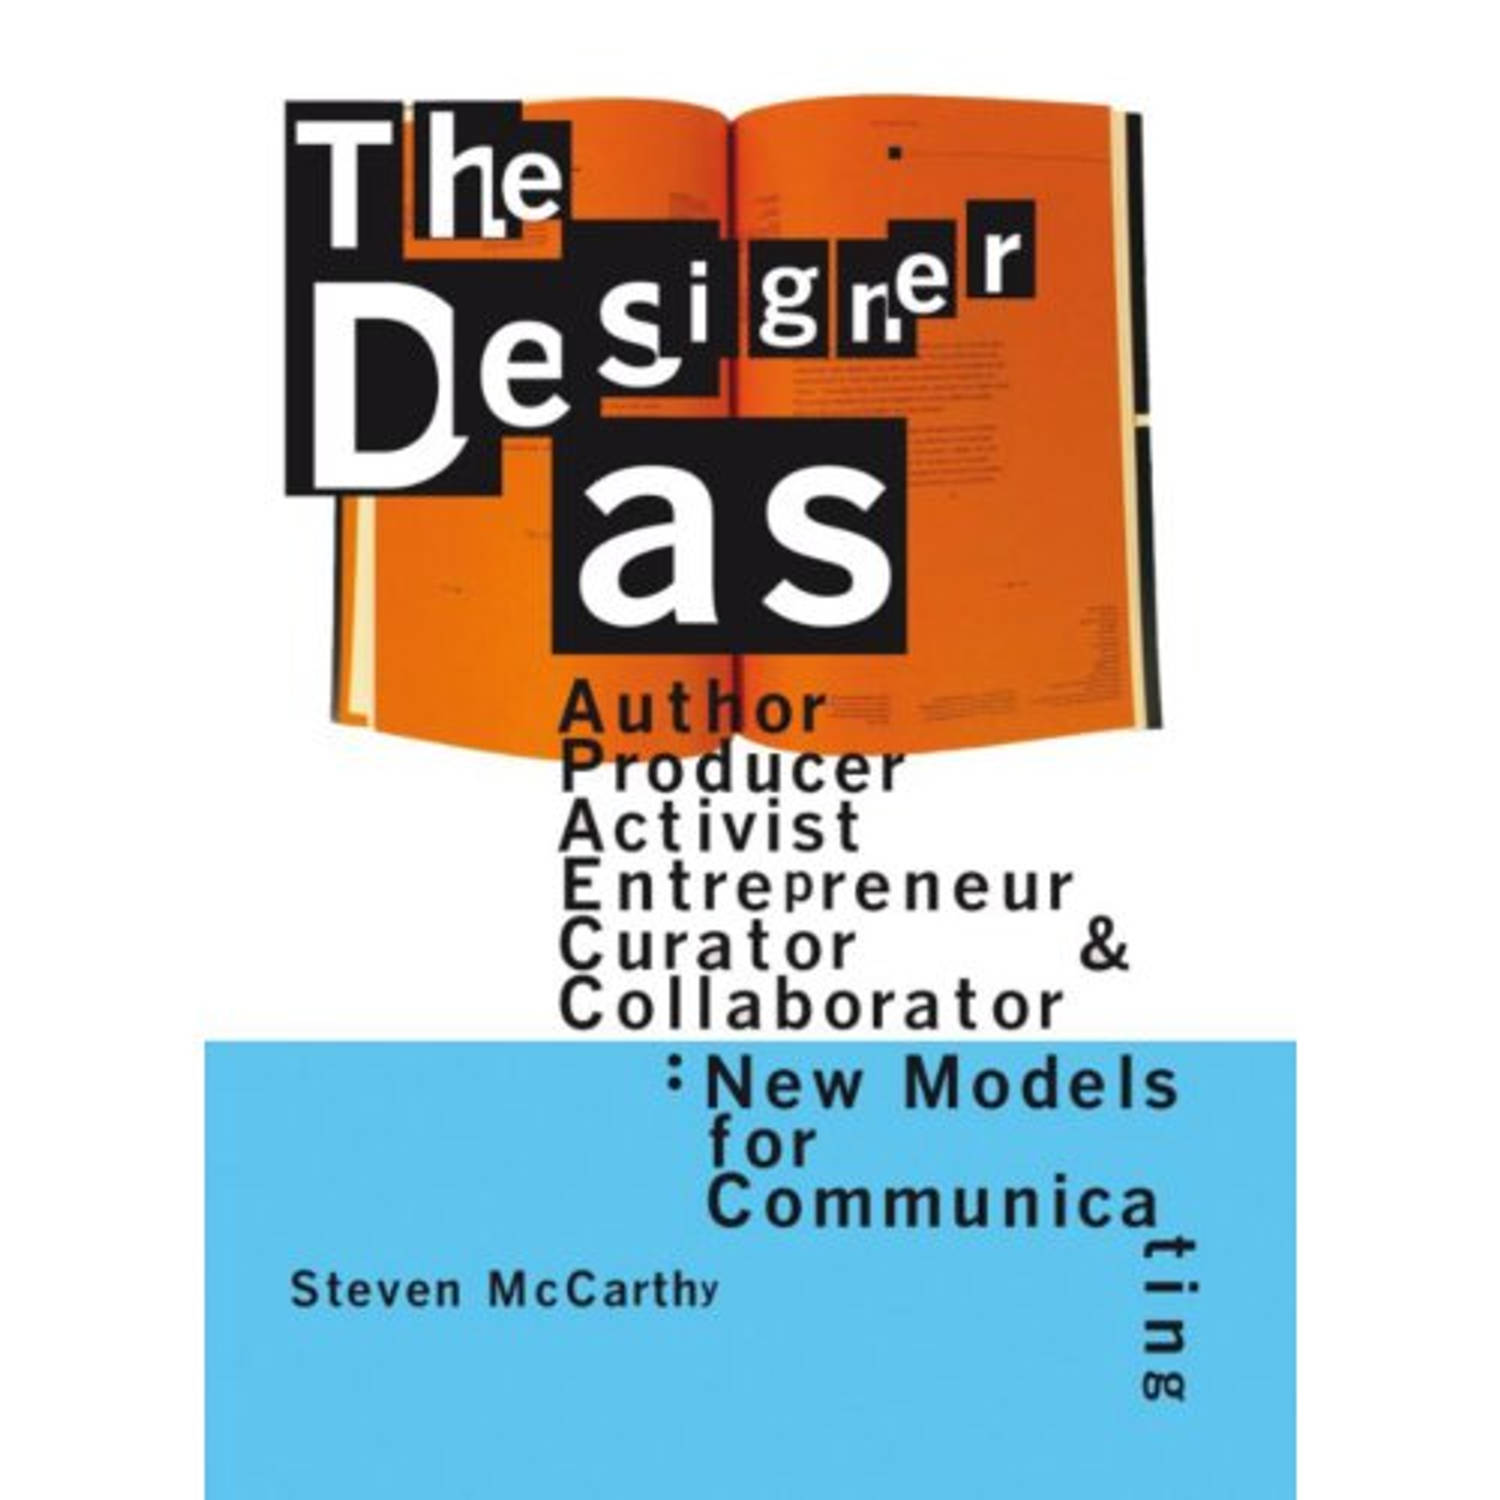 The designer as author, producer, activist, entrepreneur, curator and collaborator